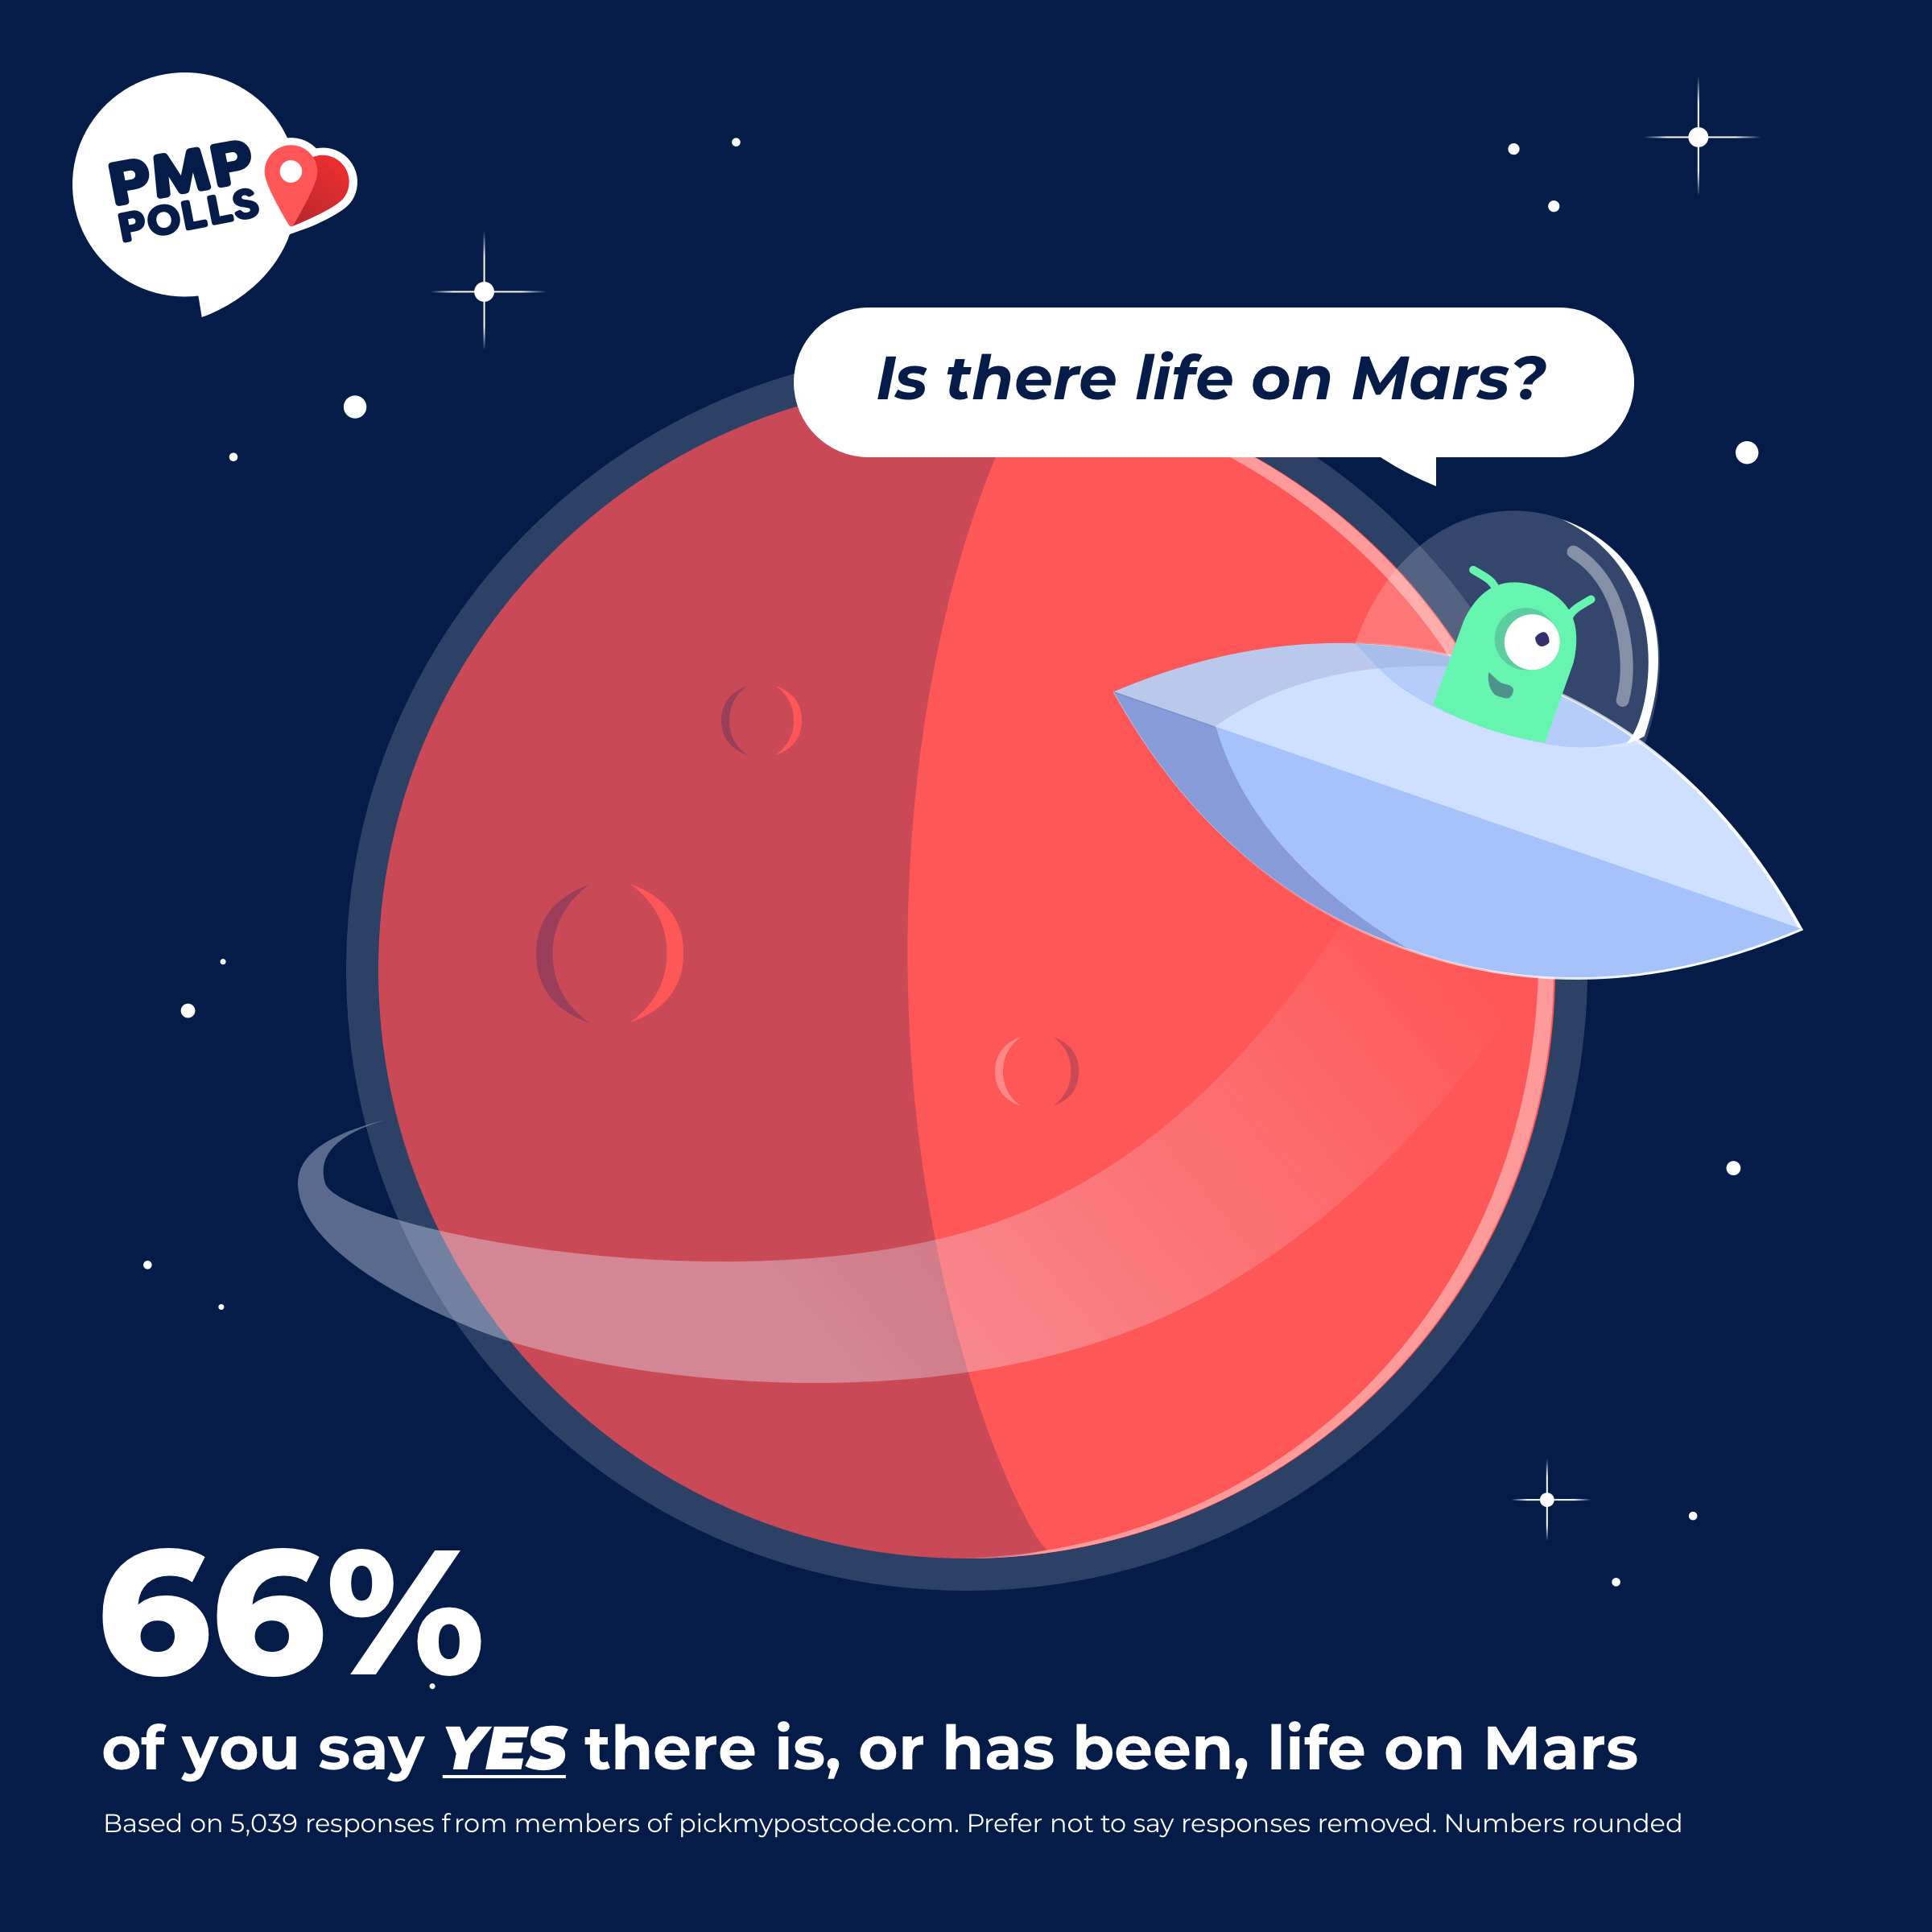 Is there life on Mars? 66% of PMP members say YES there is, or has been, life on Mars